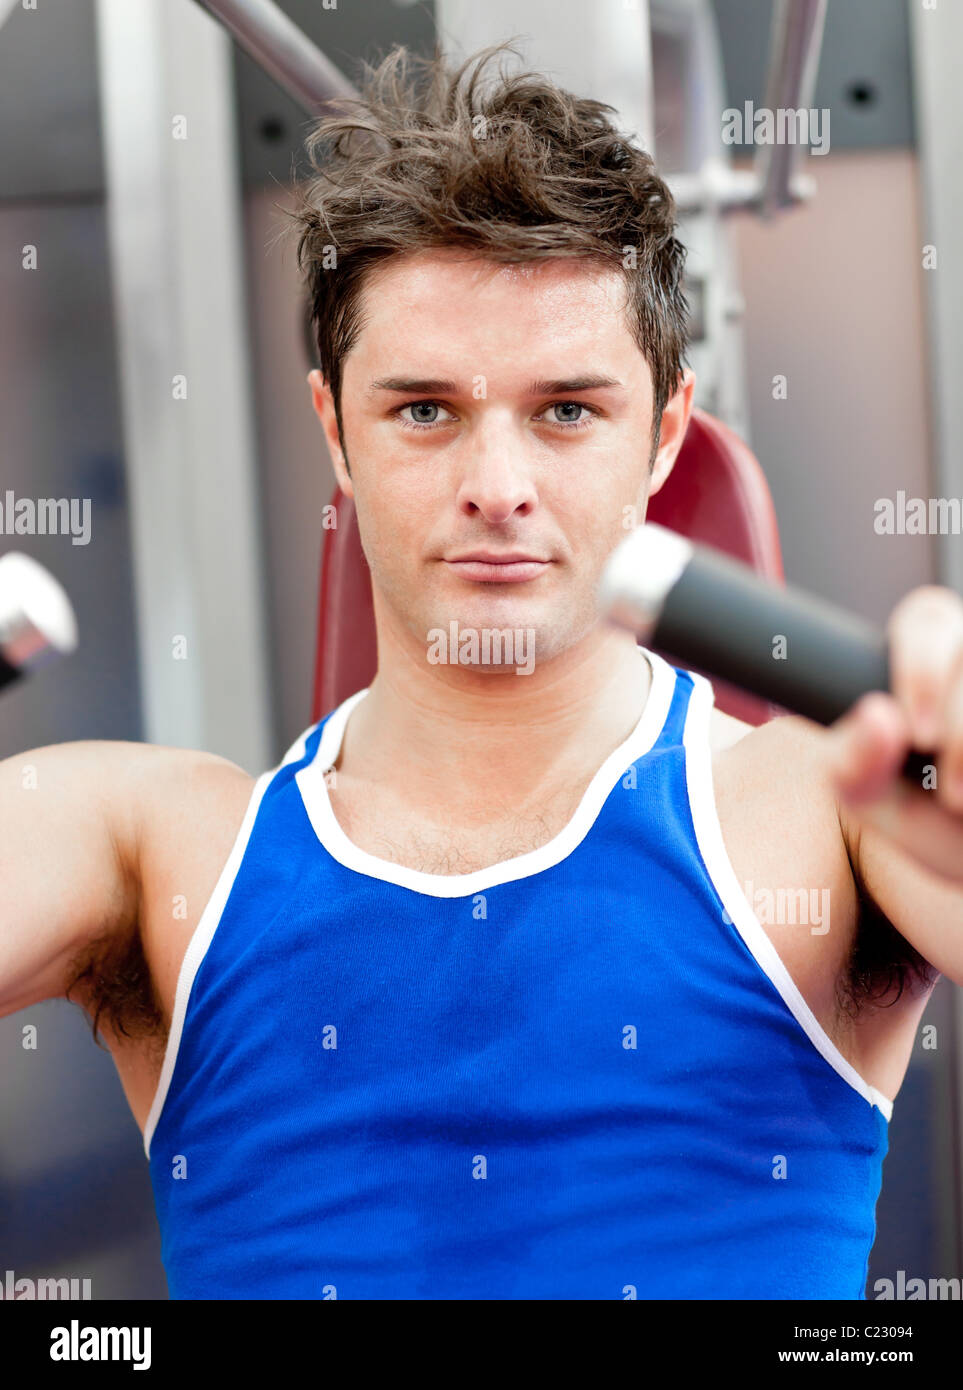 Charming athletic man using a bench press - Stock Image